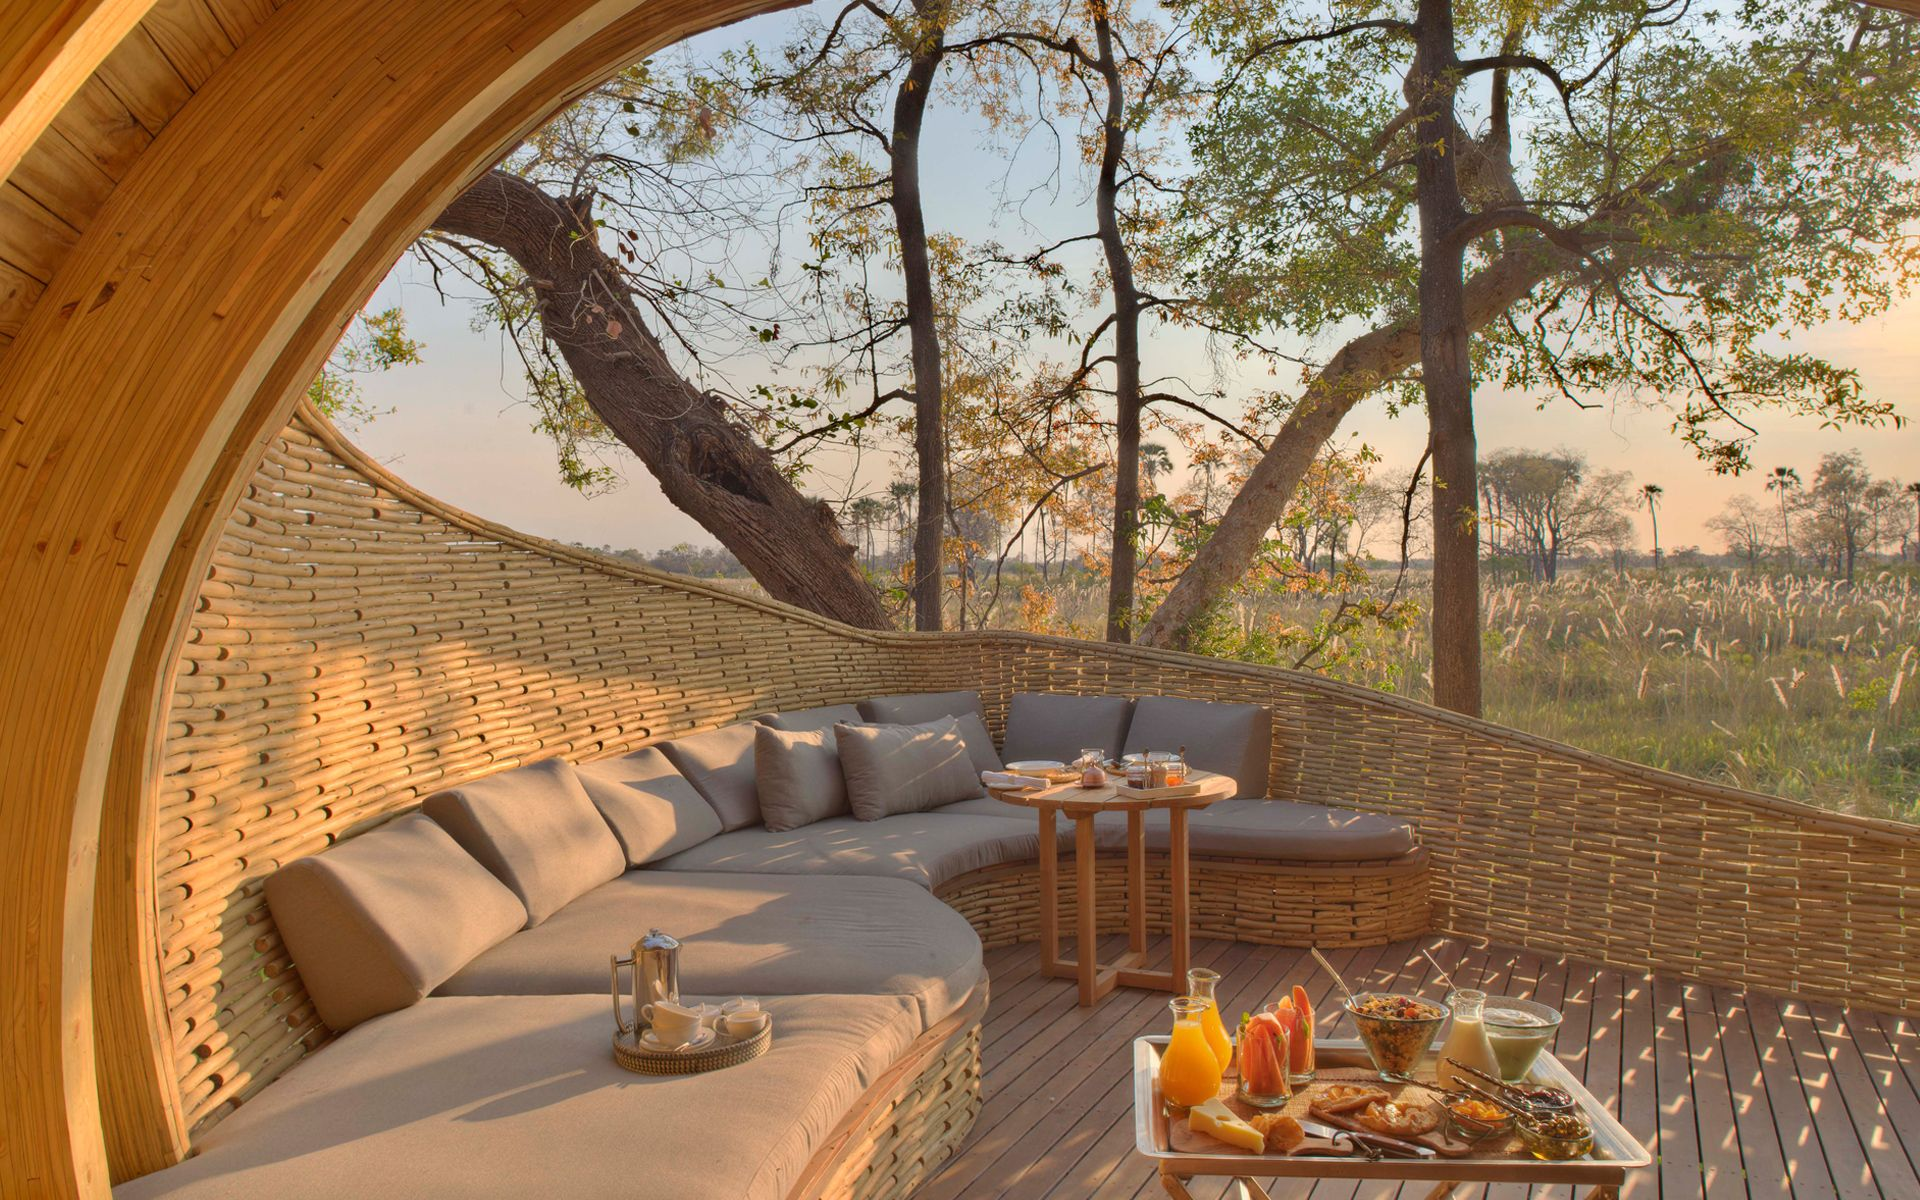 andbeyond_sandibe_okavango_safari_lodge_35